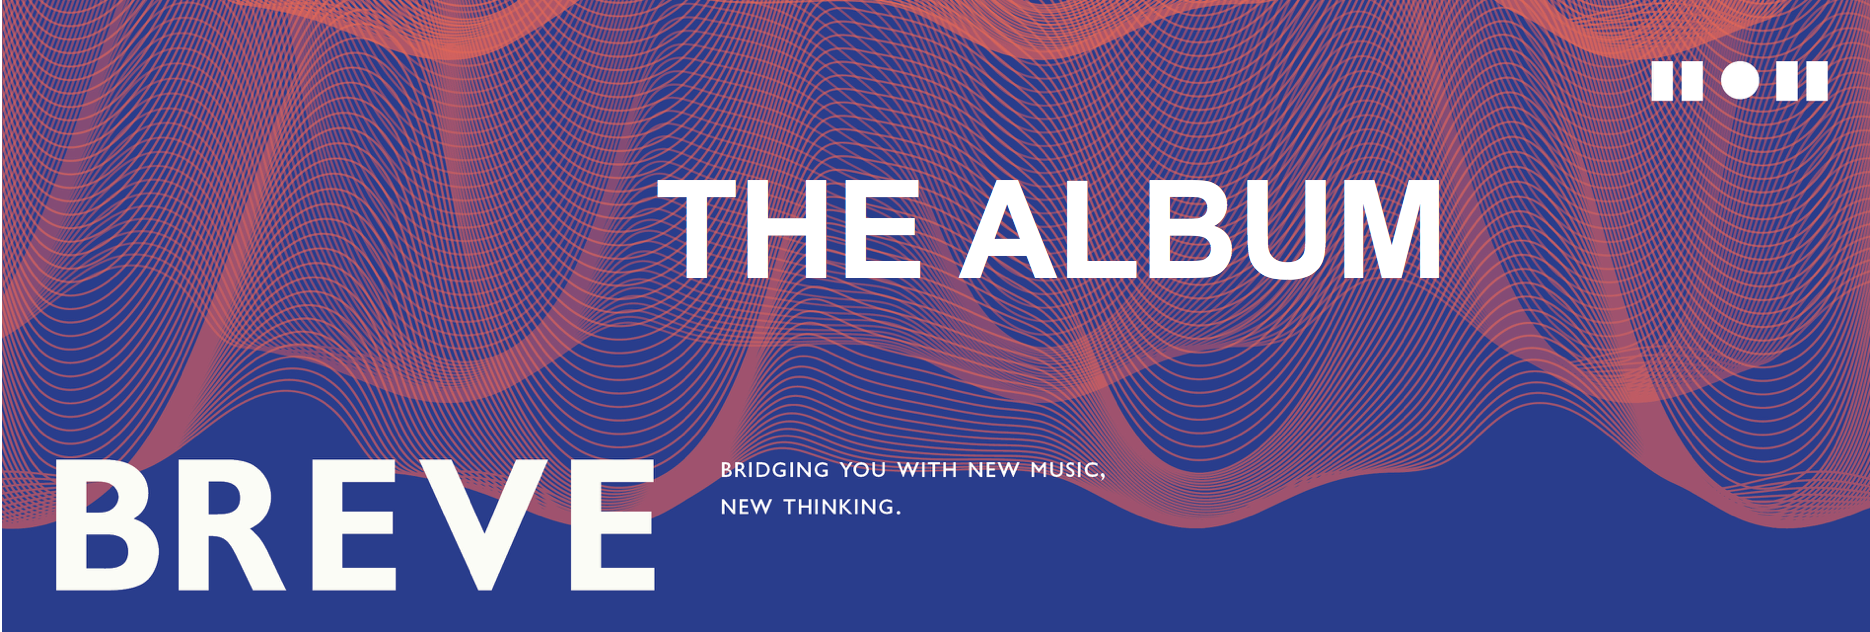 BREVE - THE ALBUM Banner.png